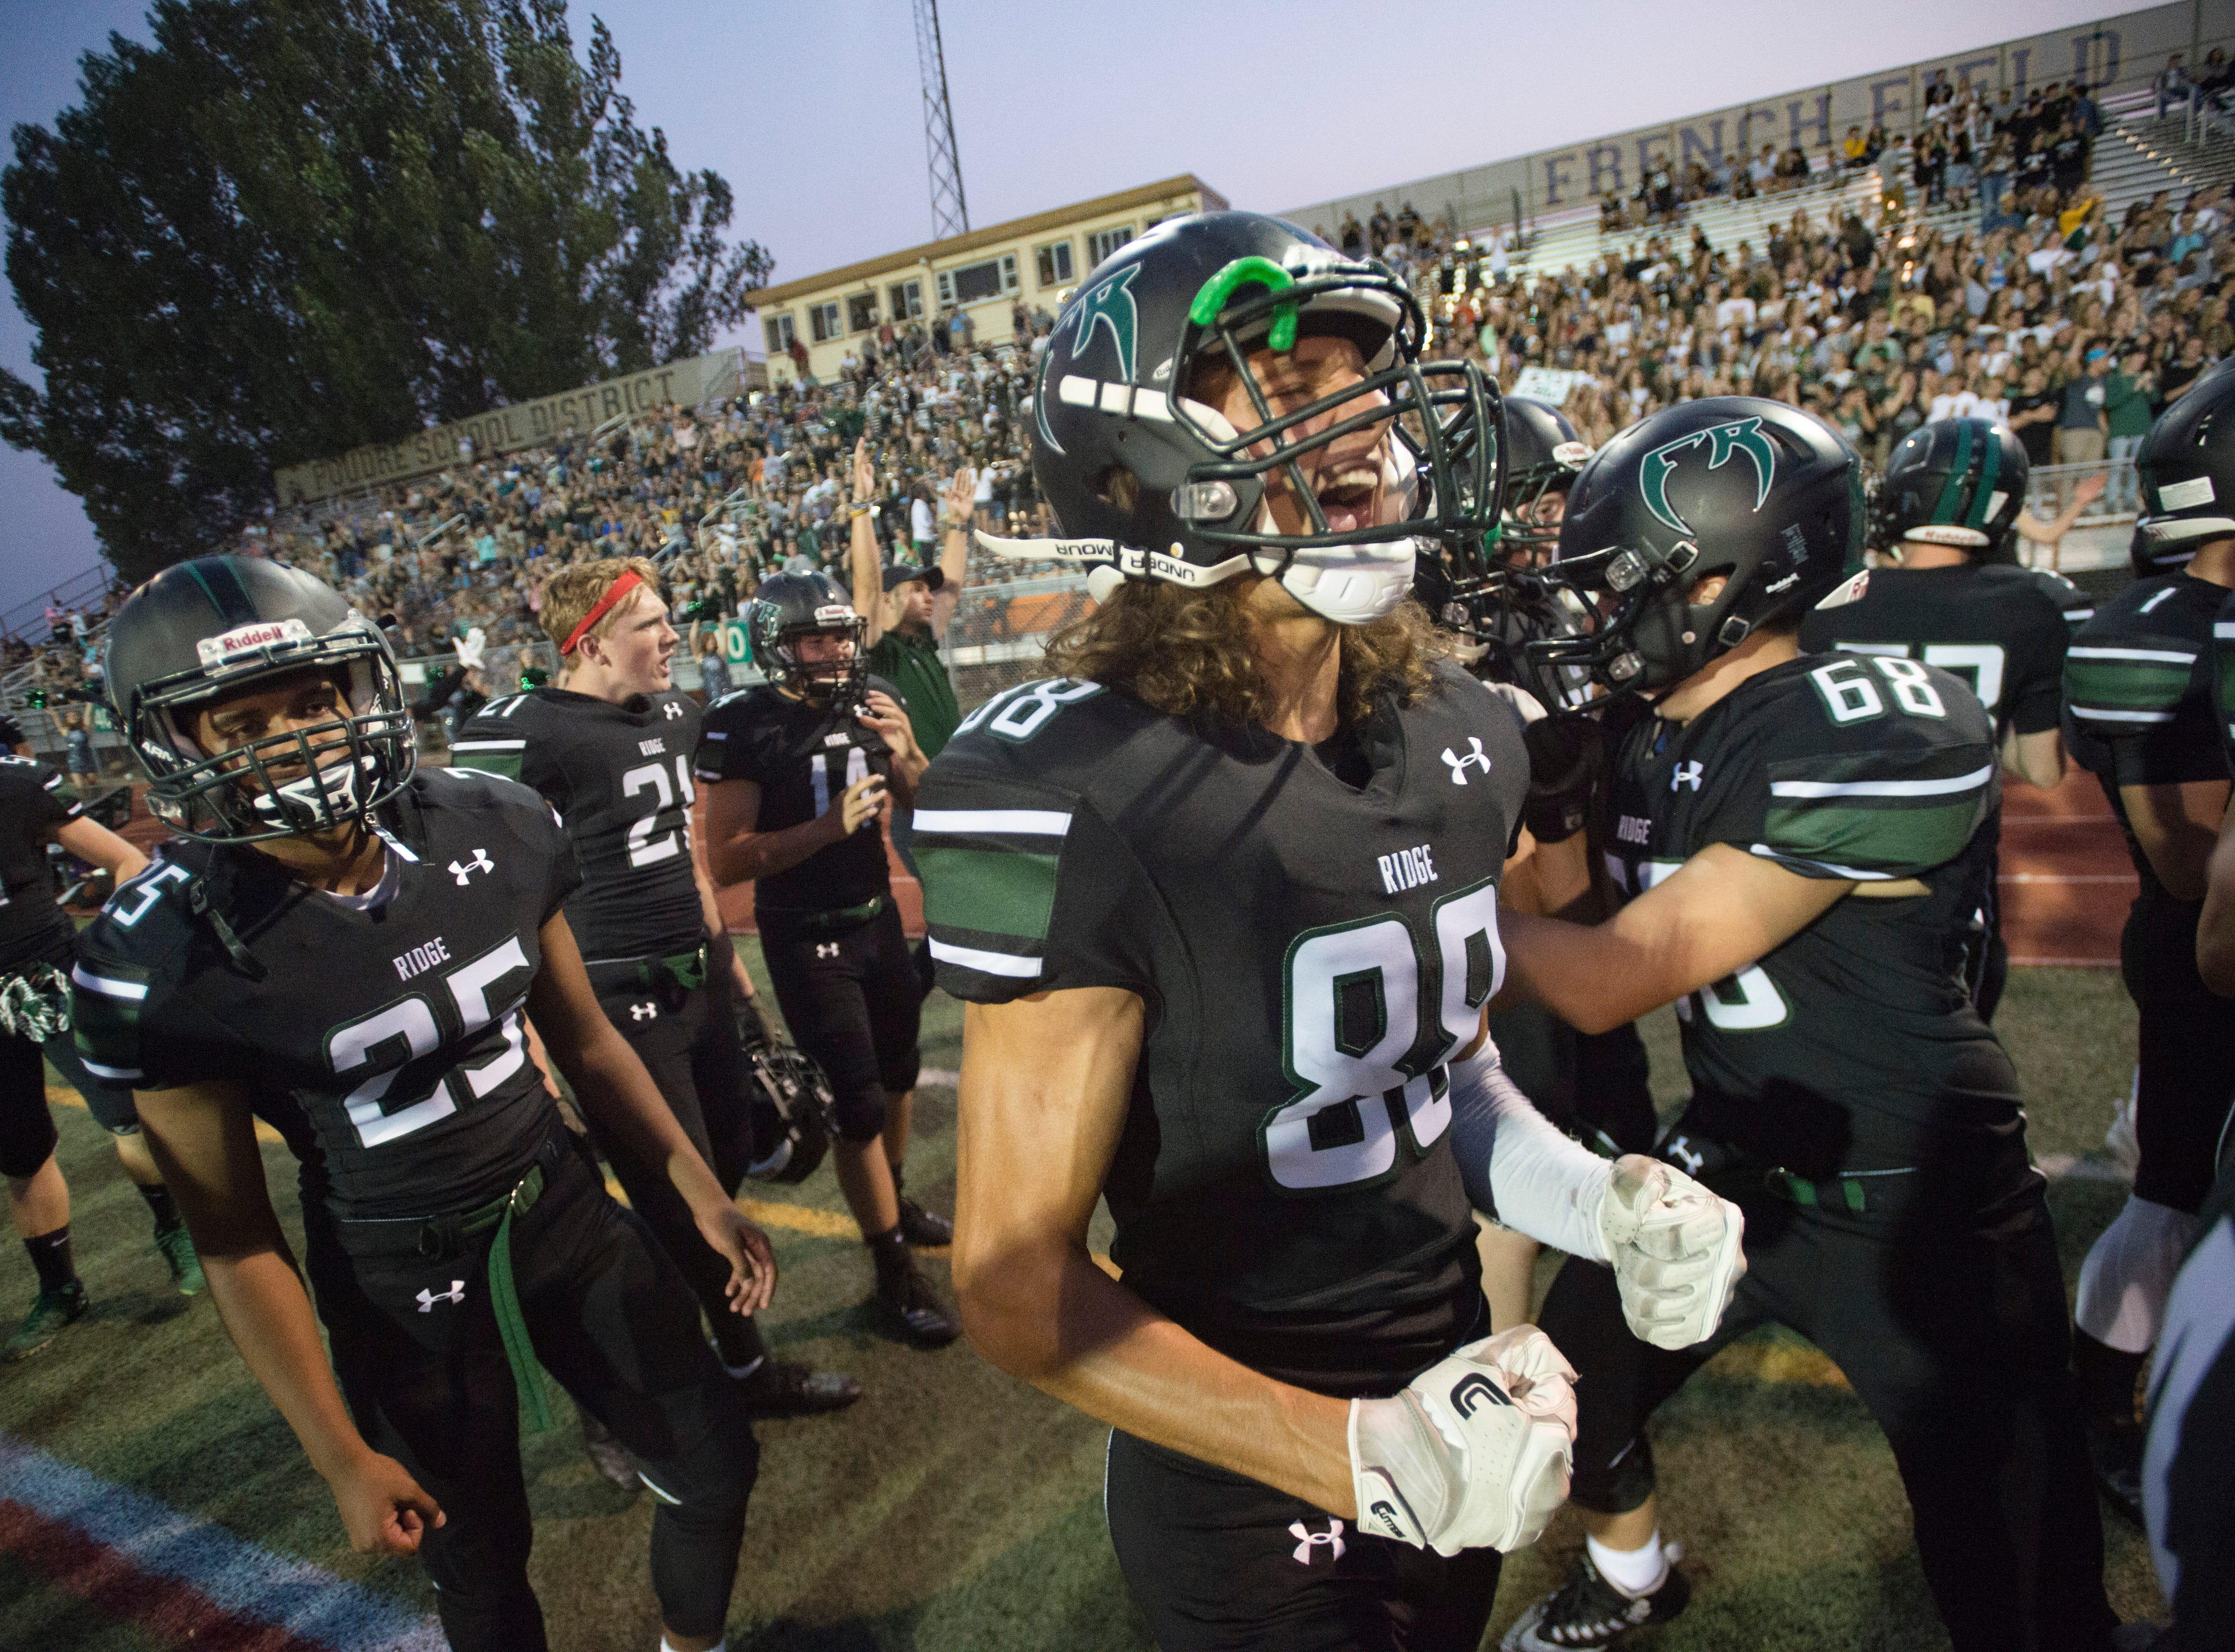 Josh Pales and the Fossil Ridge High School football team celebrate after a play in a game against Castle View at French Field on Thursday, August 23, 2018.